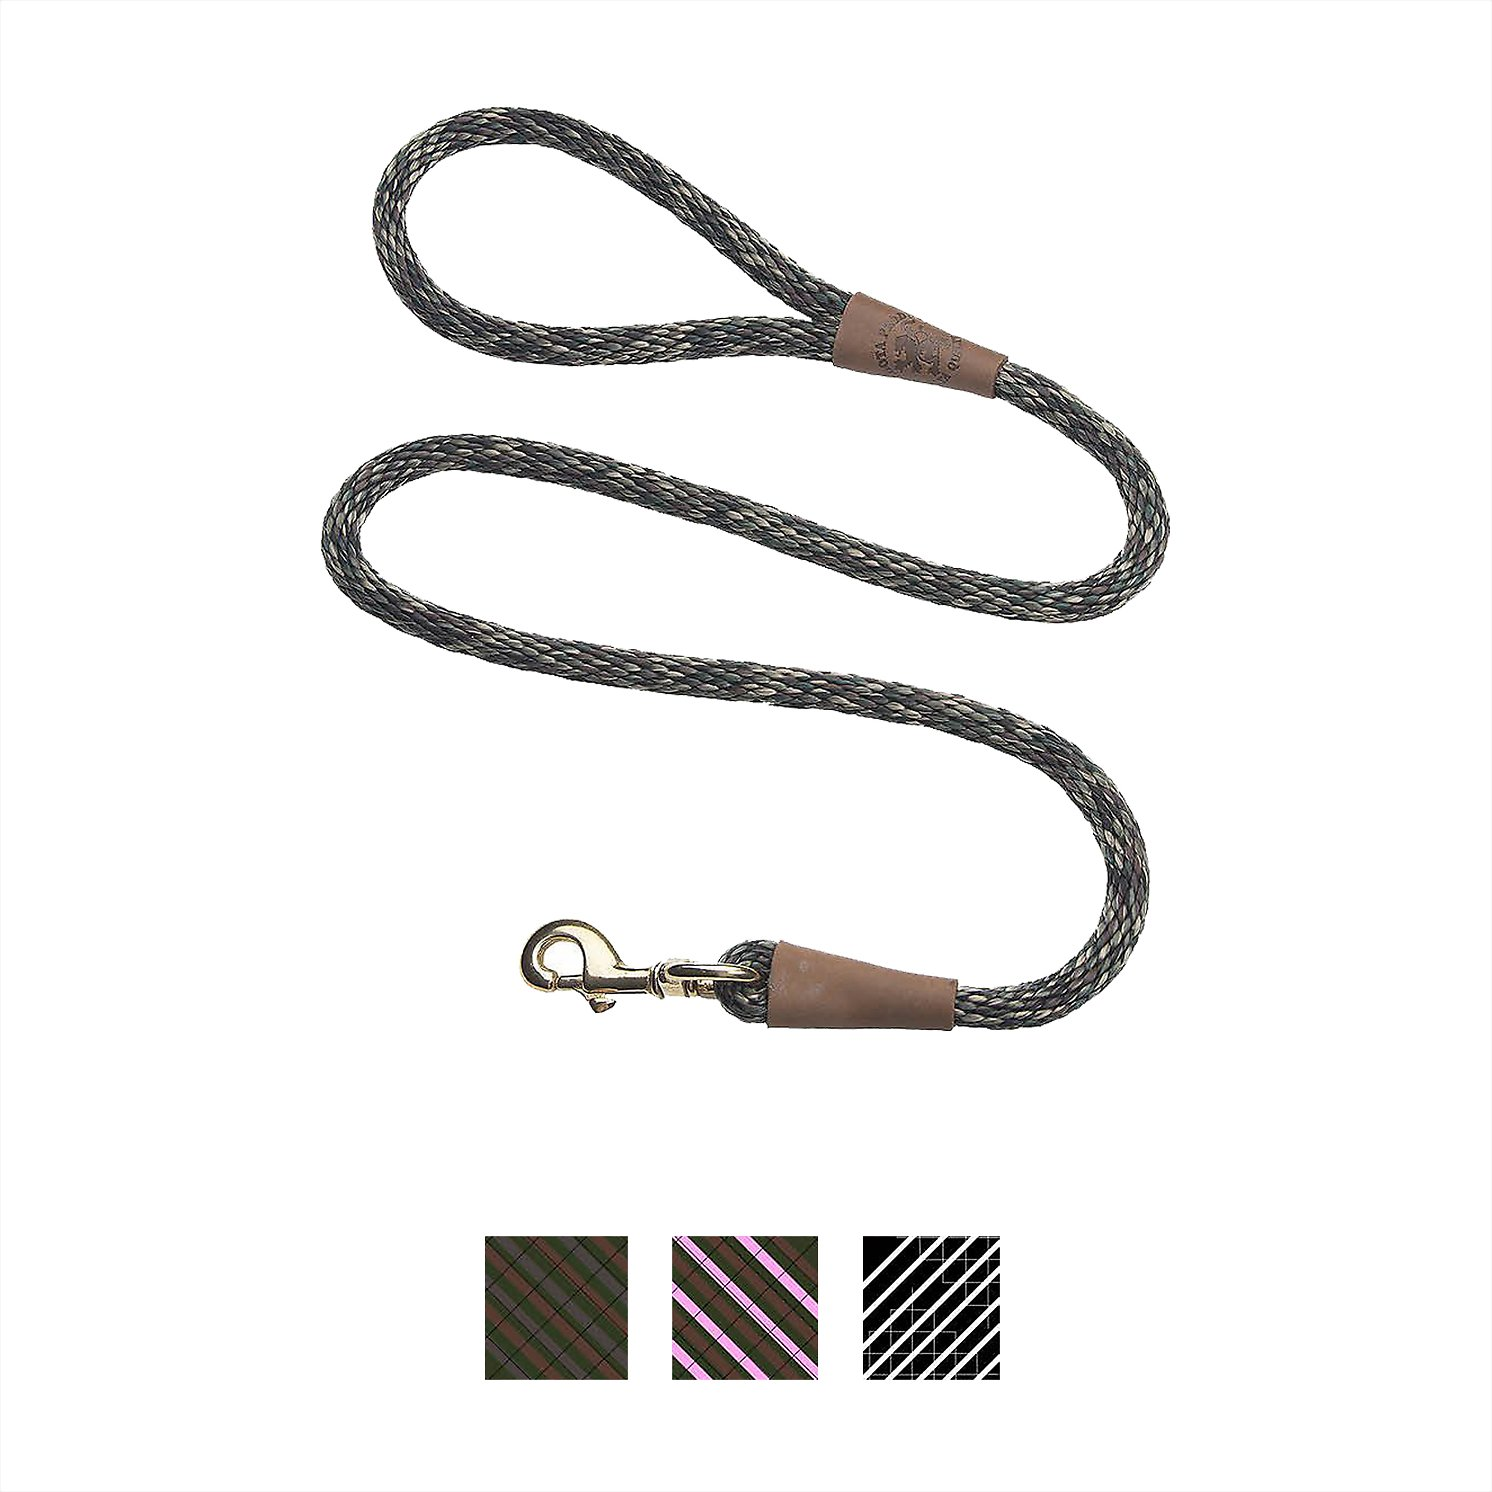 Mendota Products Large Snap Camouflage Print Dog Leash 6